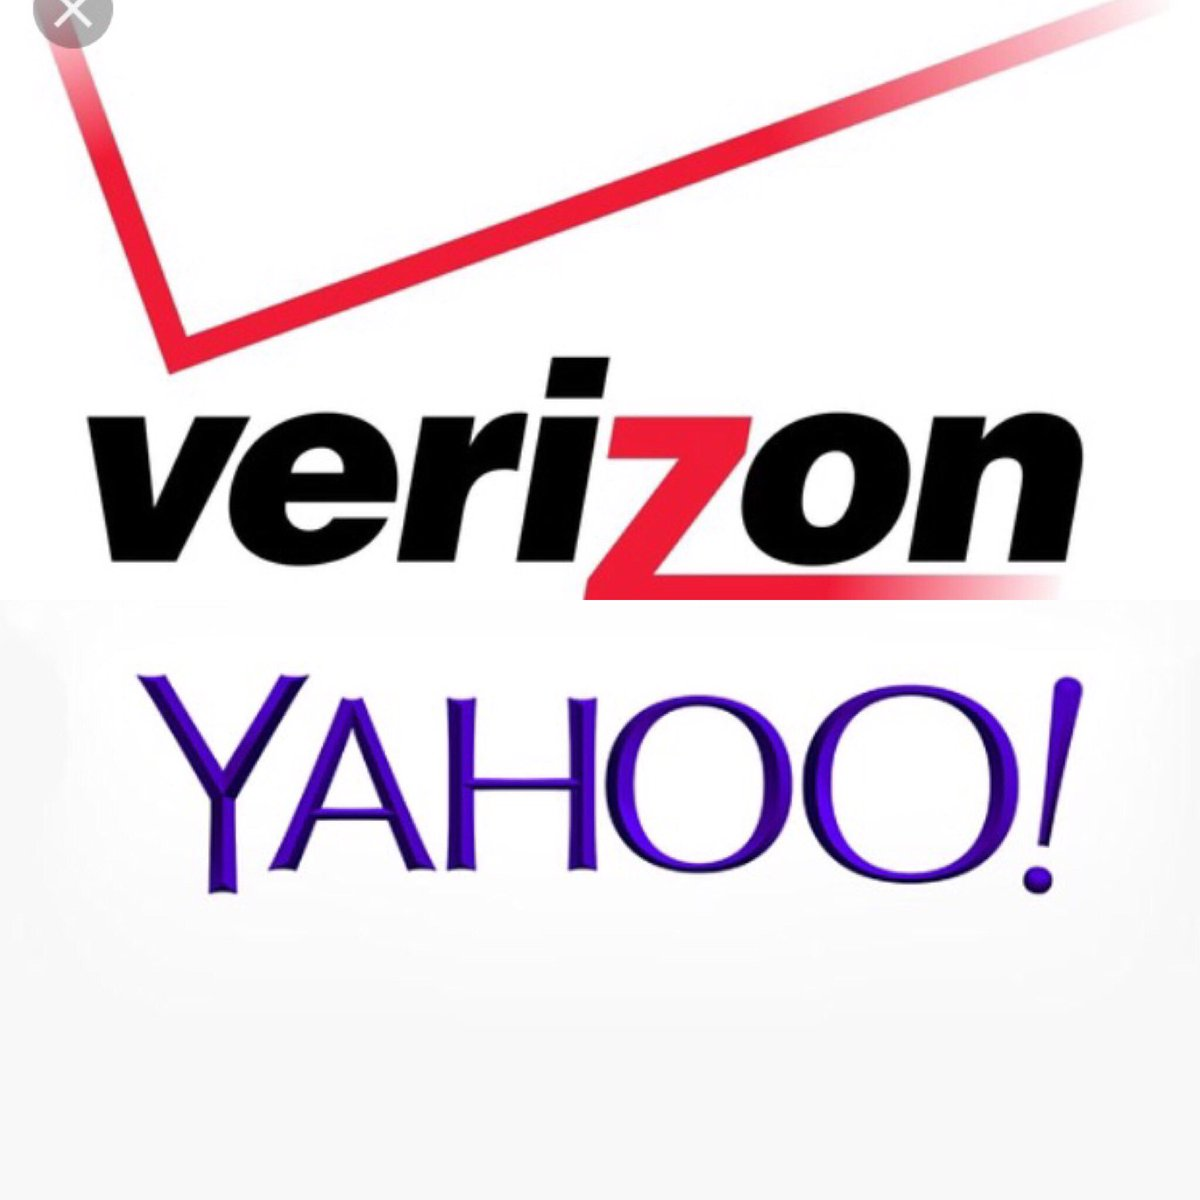 in 2008 Microsoft offered to buy yahoo for 45 billion. Sold overnight for 4.8 billion. 40 billion diff @kron4news